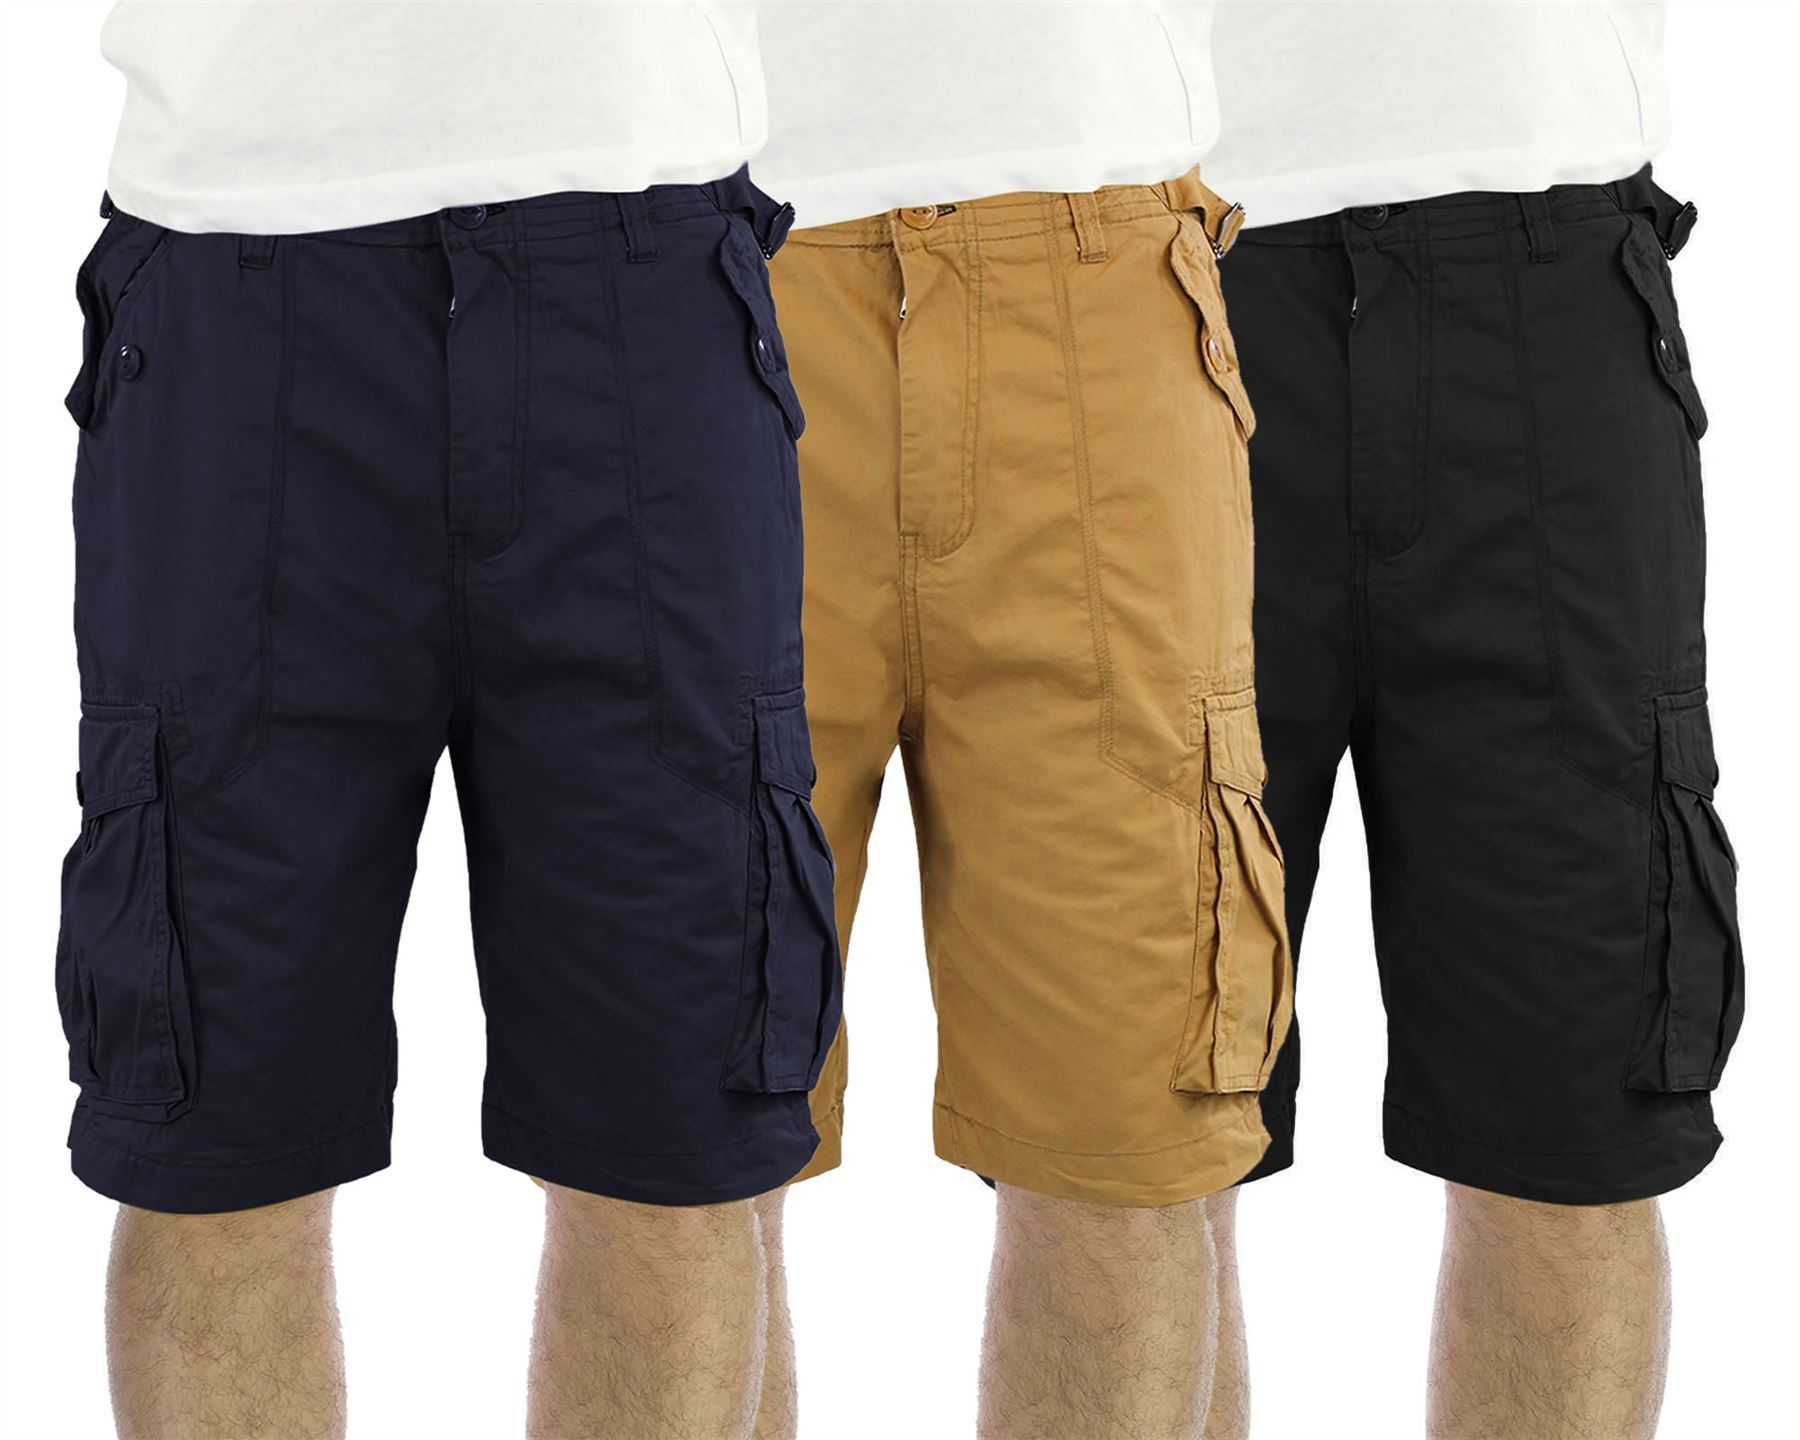 Mens Cargo Shorts Summer Casual Cotton Combat Pants Military Chino S M L XL 2XL